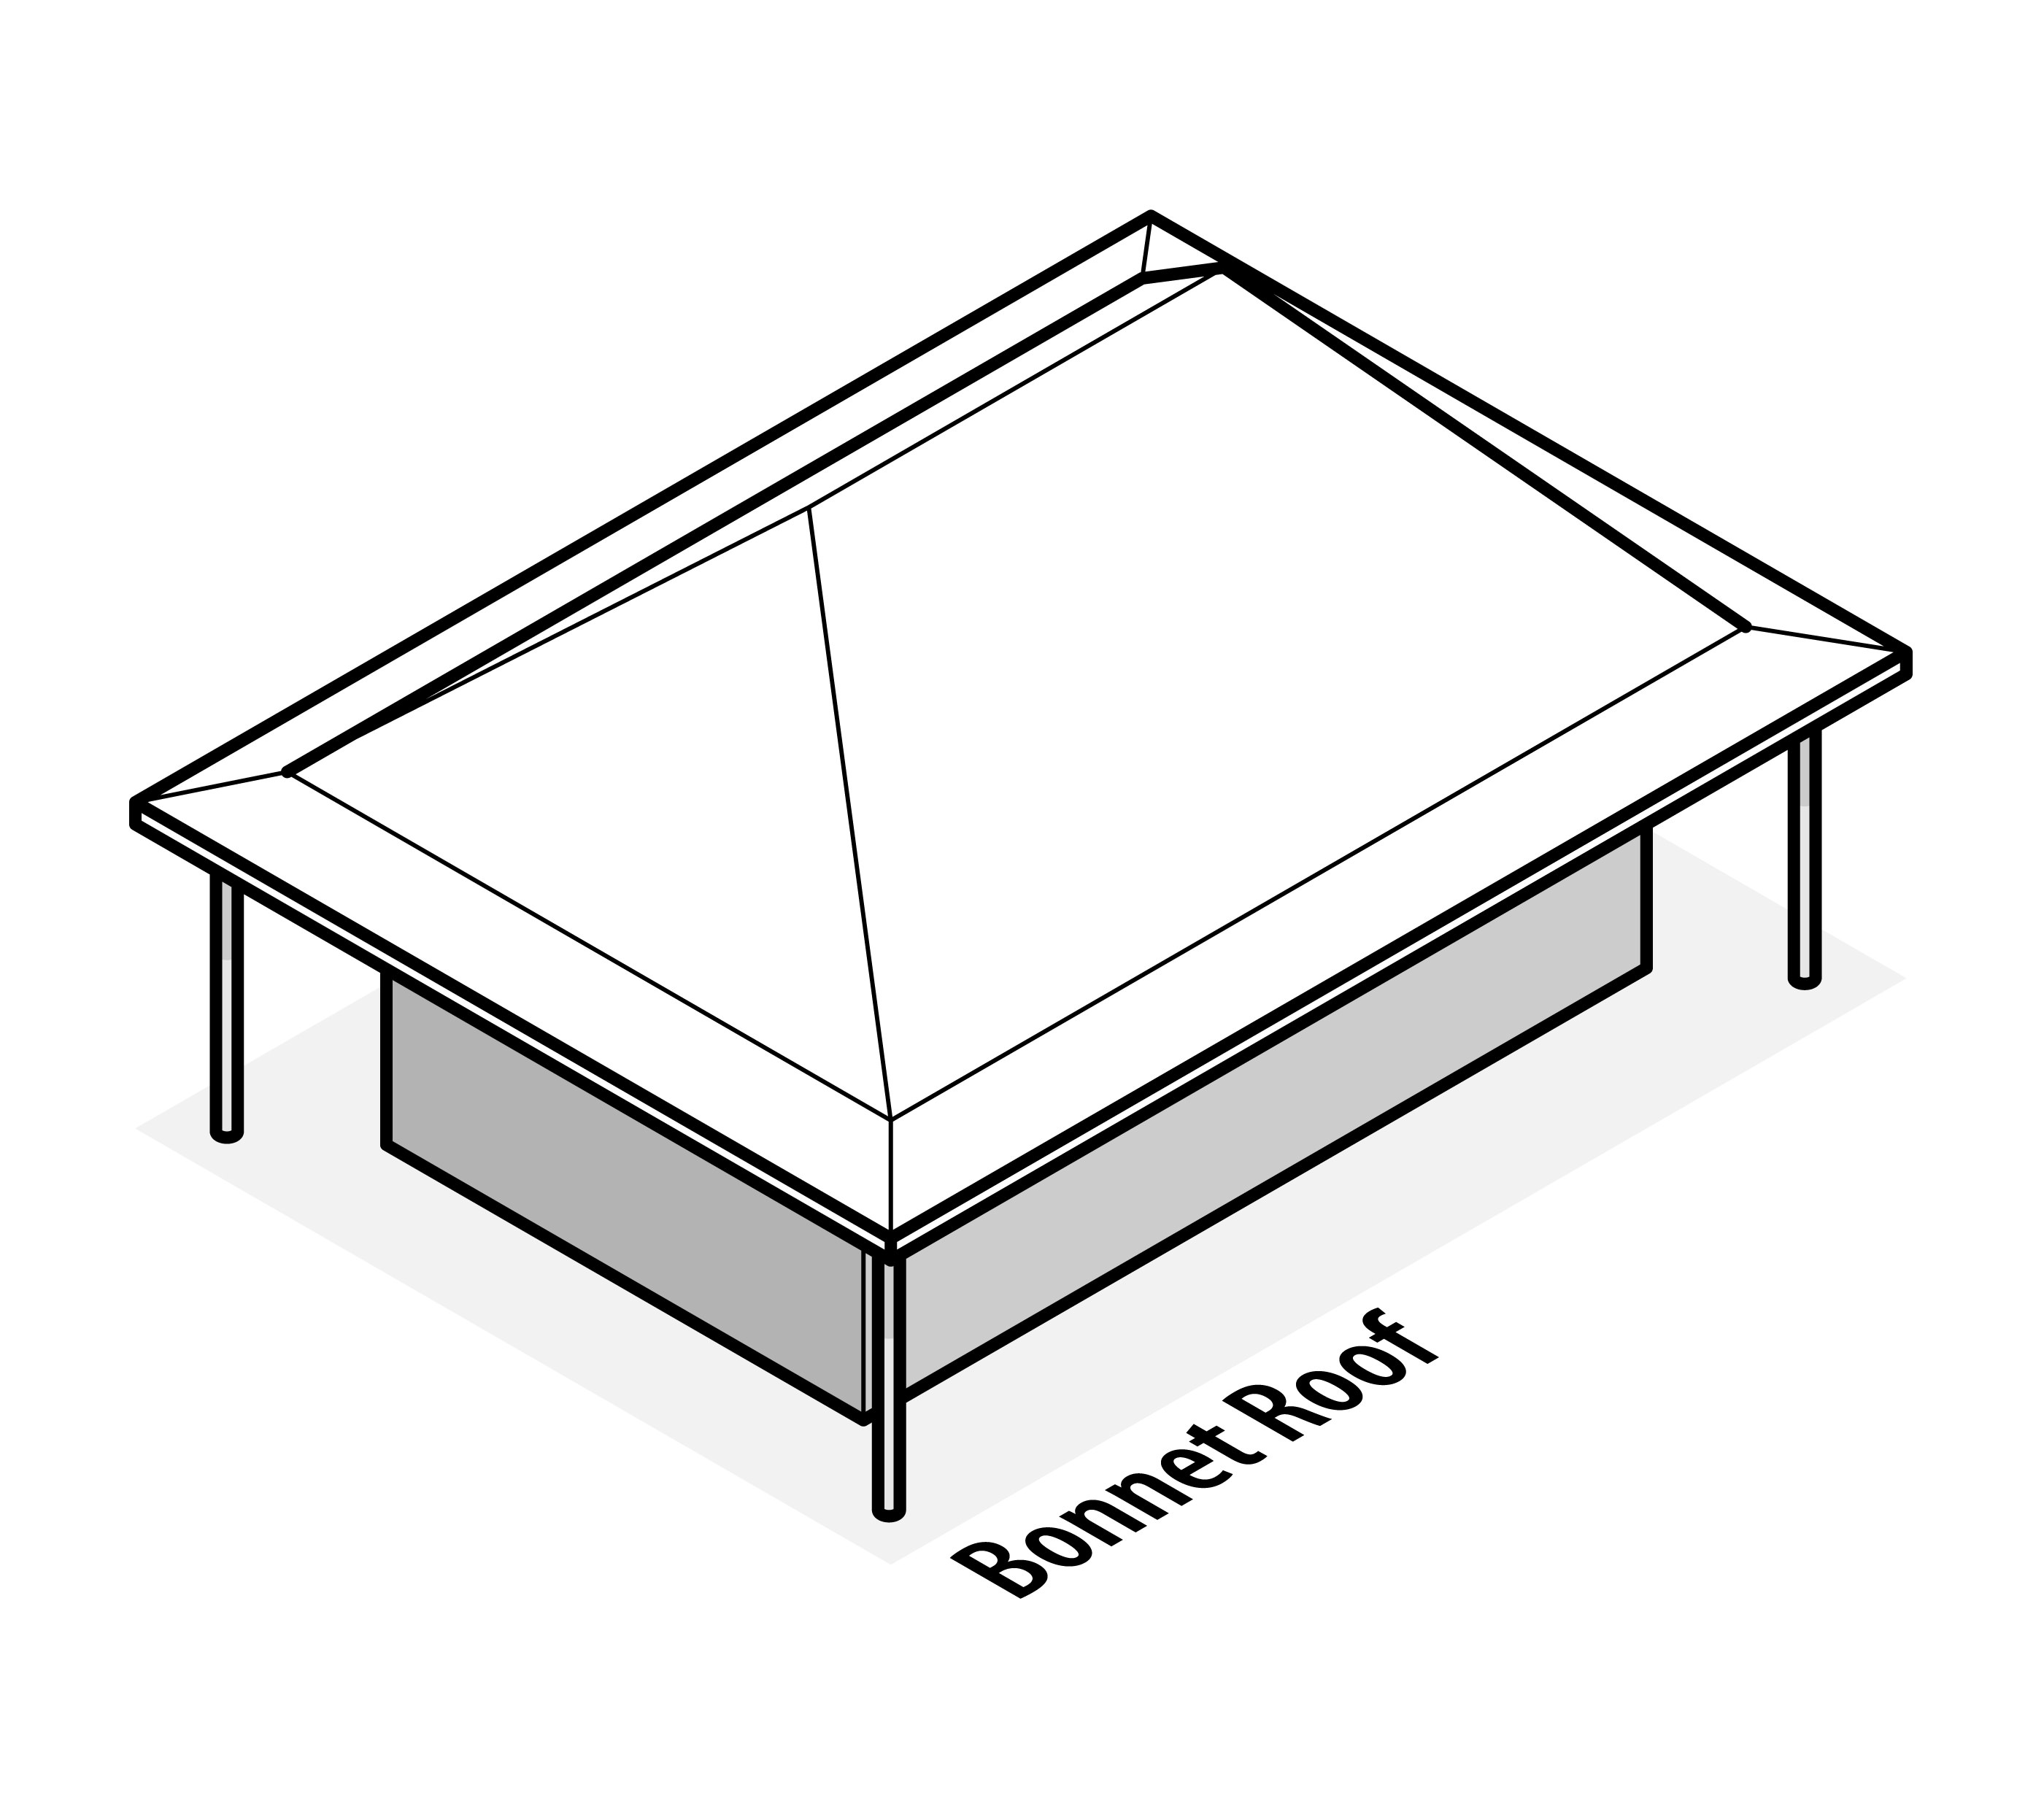 2801x2464 15 Types Of Roofs For Houses (With Illustrations)